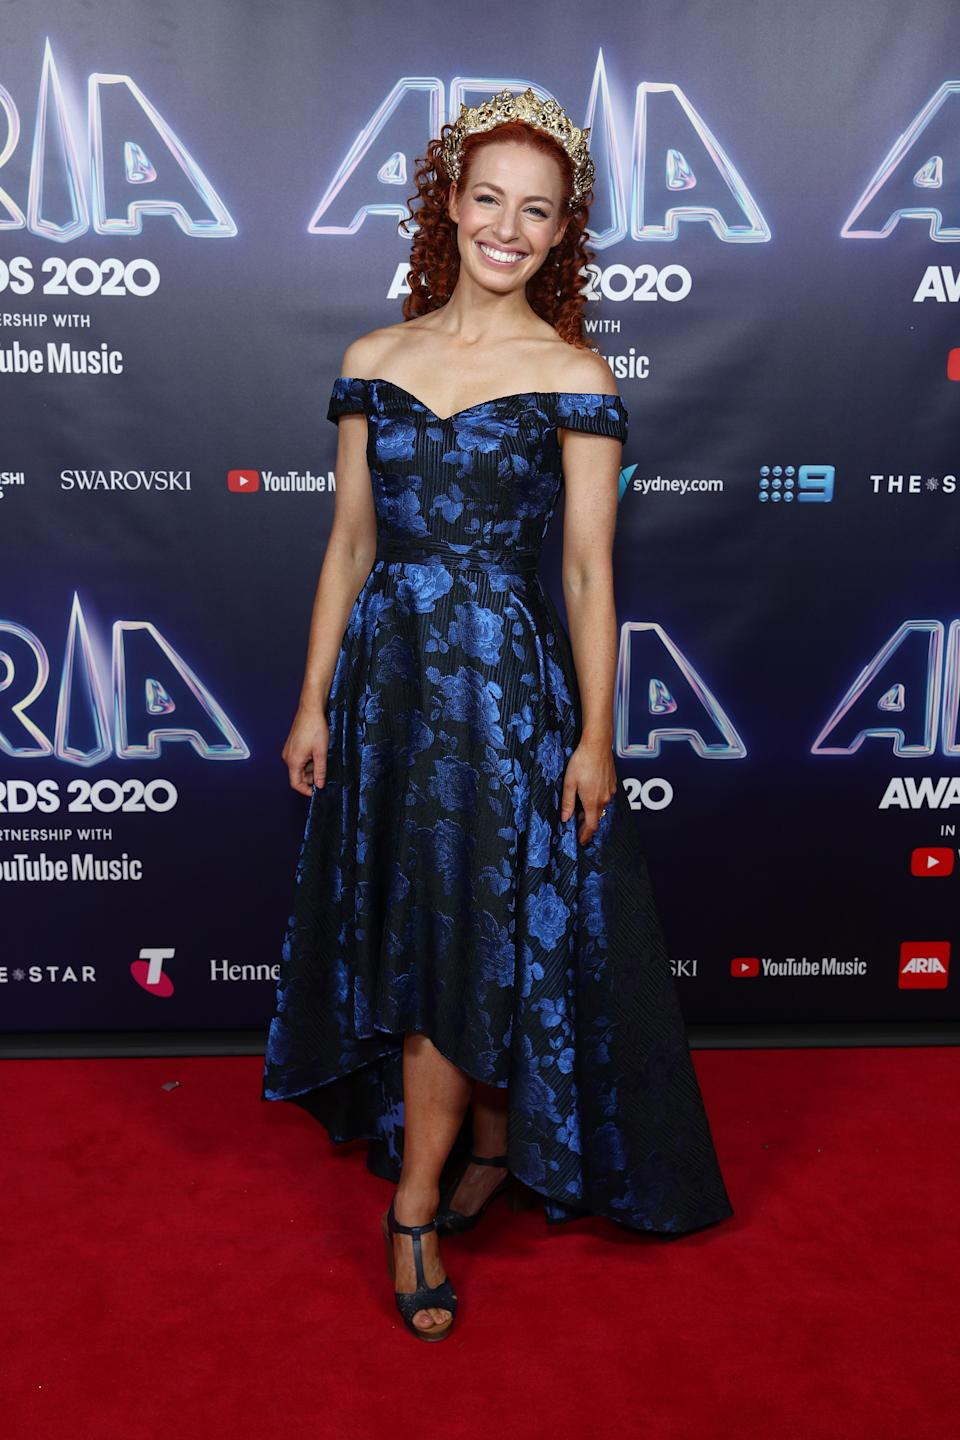 Emma Watkins wears a blue floral gown on the red carpet at the 2020 ARIA Awards at The Star on November 24, 2020 in Sydney, Australia.